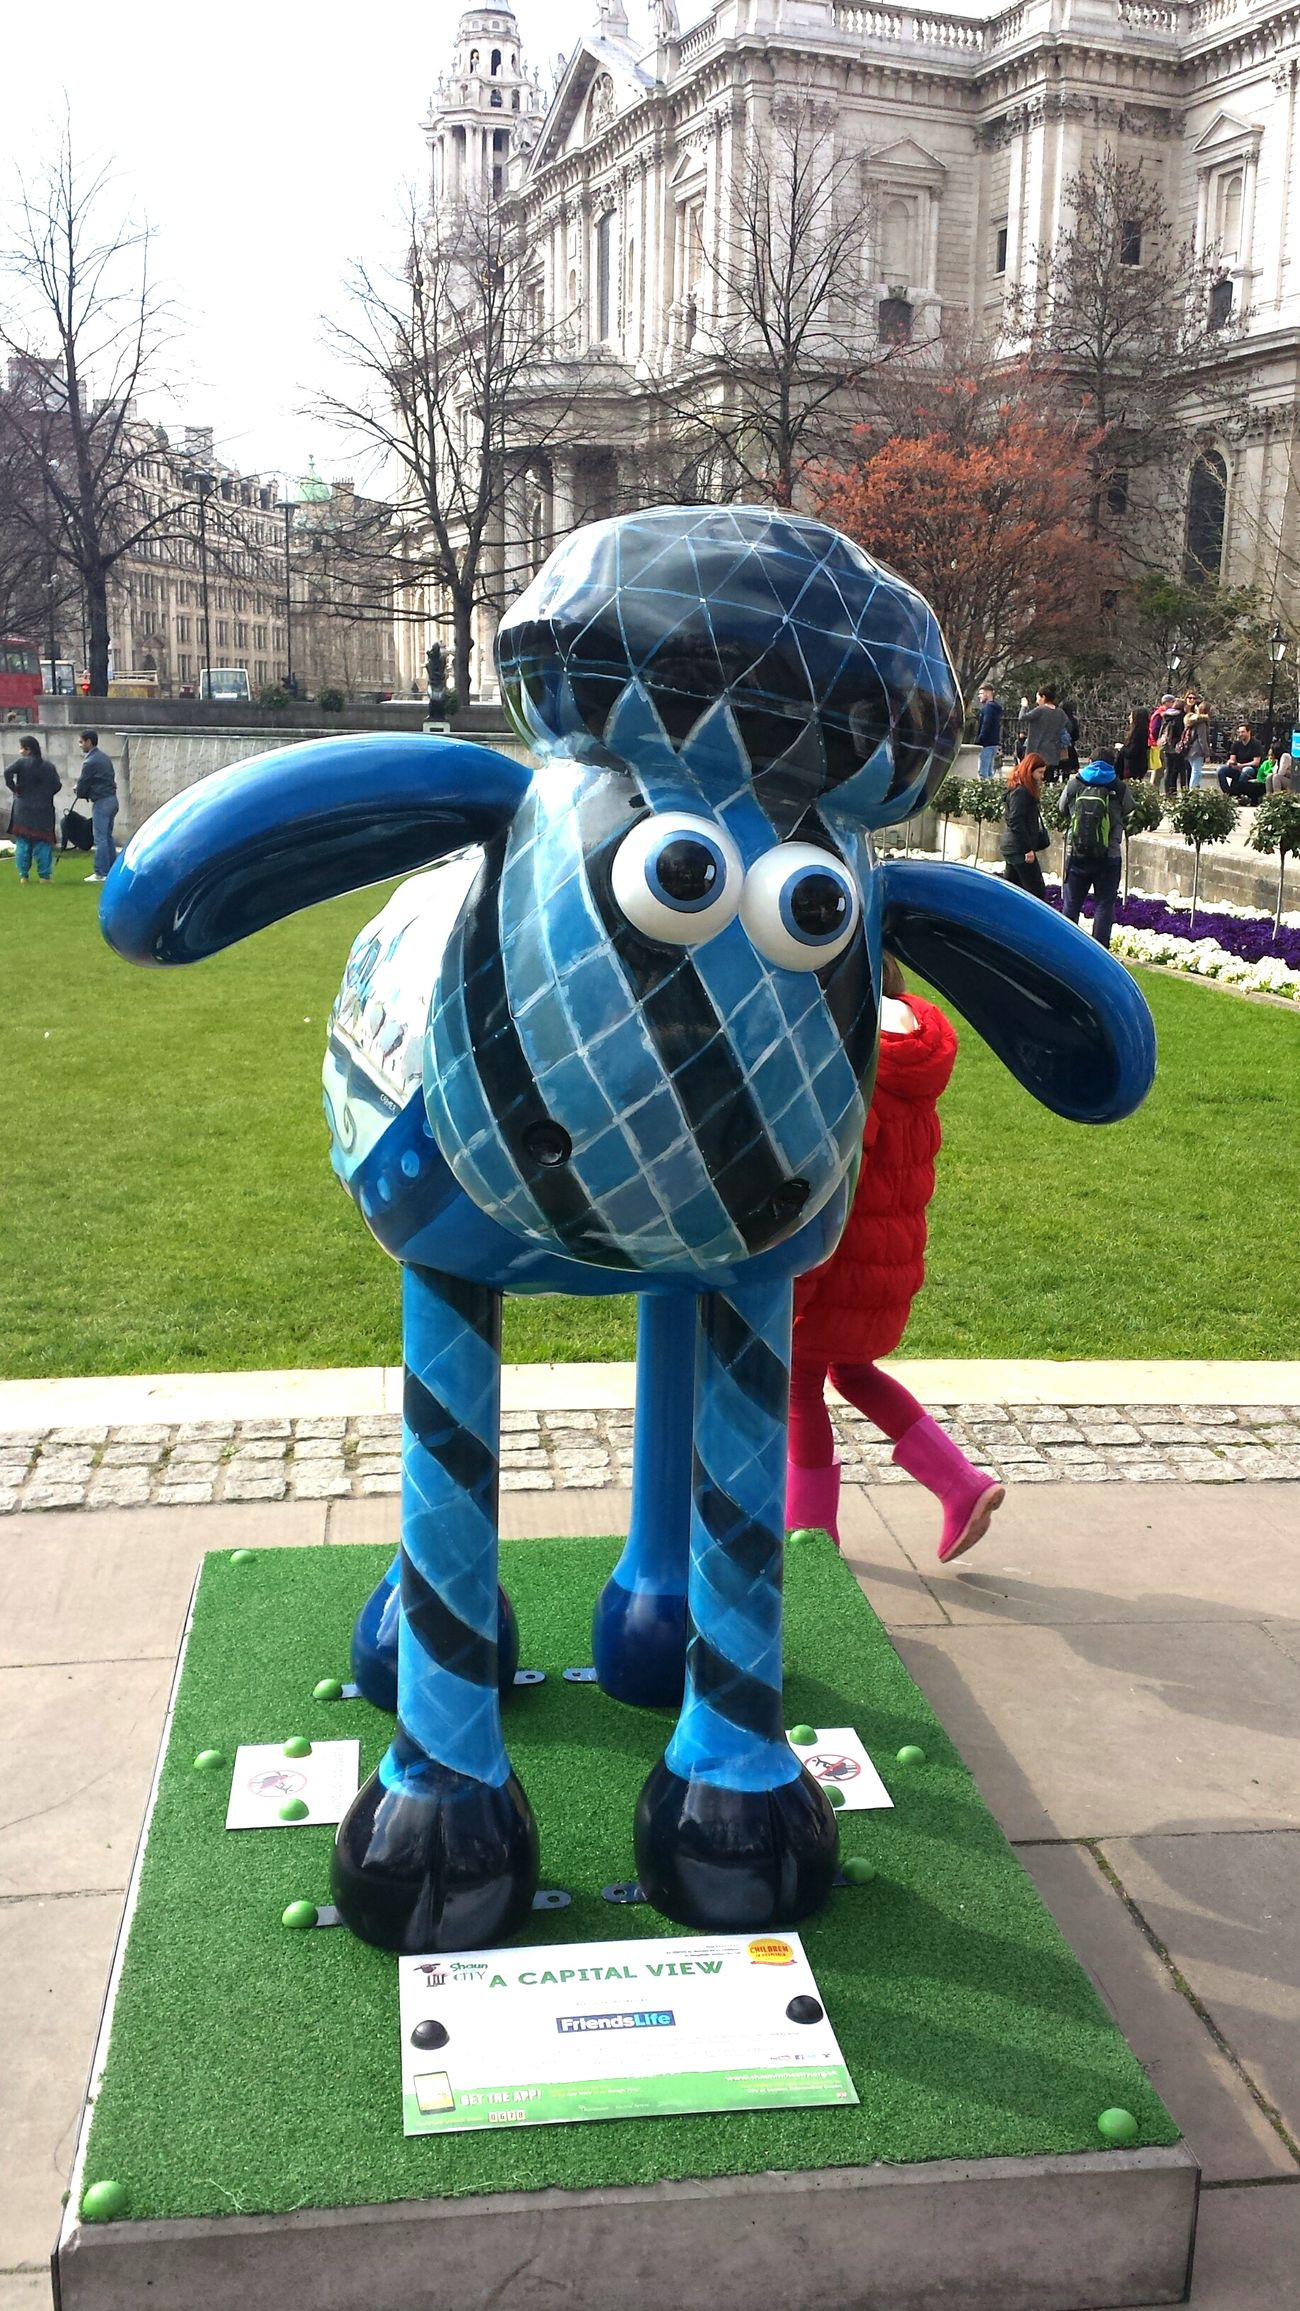 Public Art Sheep Statue